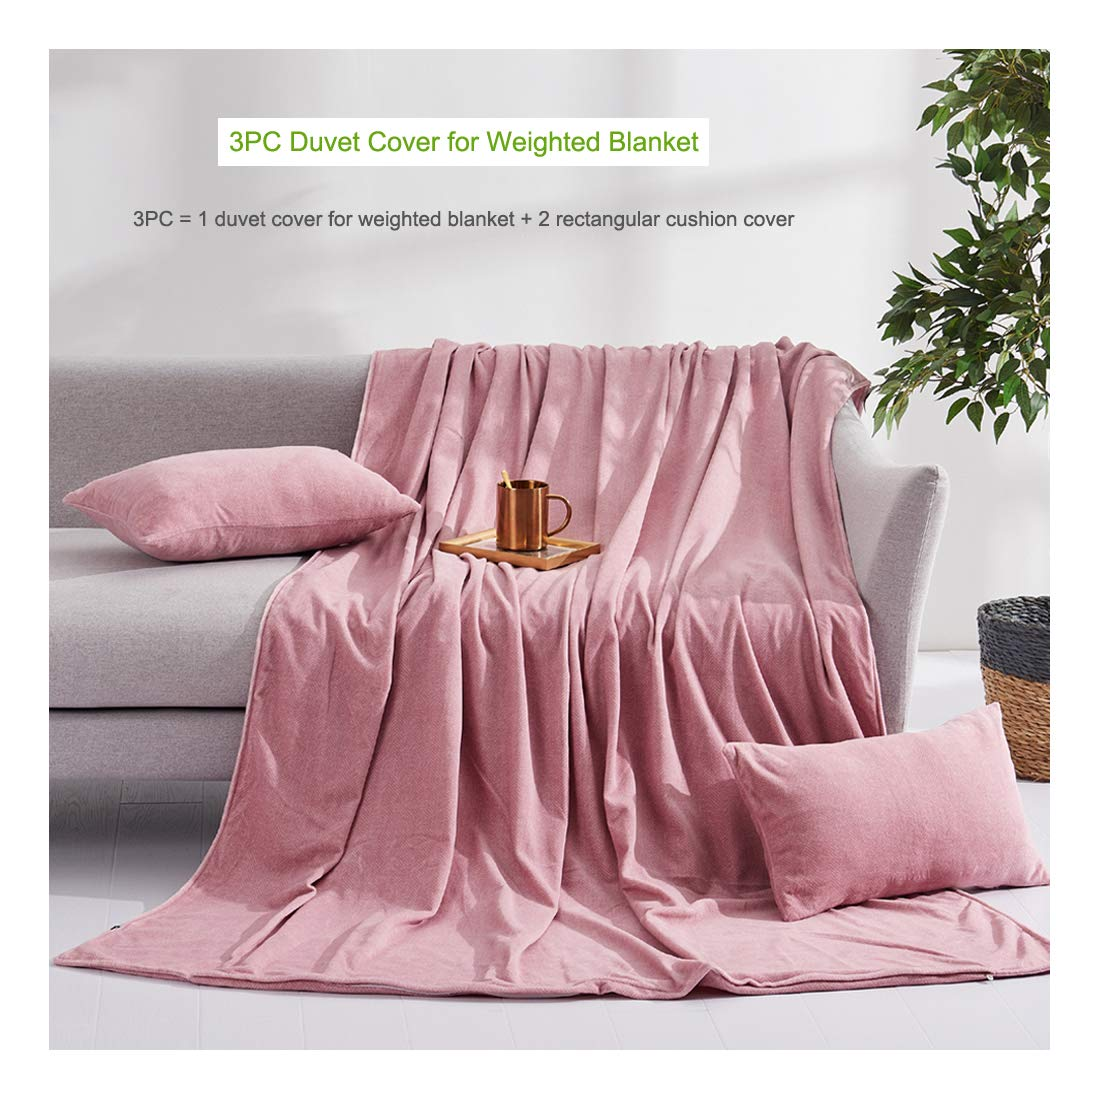 Taiyihome Adult Removable Duvet Cover for Weighted Blanket, Ultra Soft Velvet Machine Washable Easy to Clean, Heavy Blanket Protector, Weighted Blanket Cover (Camel Pink, 60''×80'') by Taiyihome